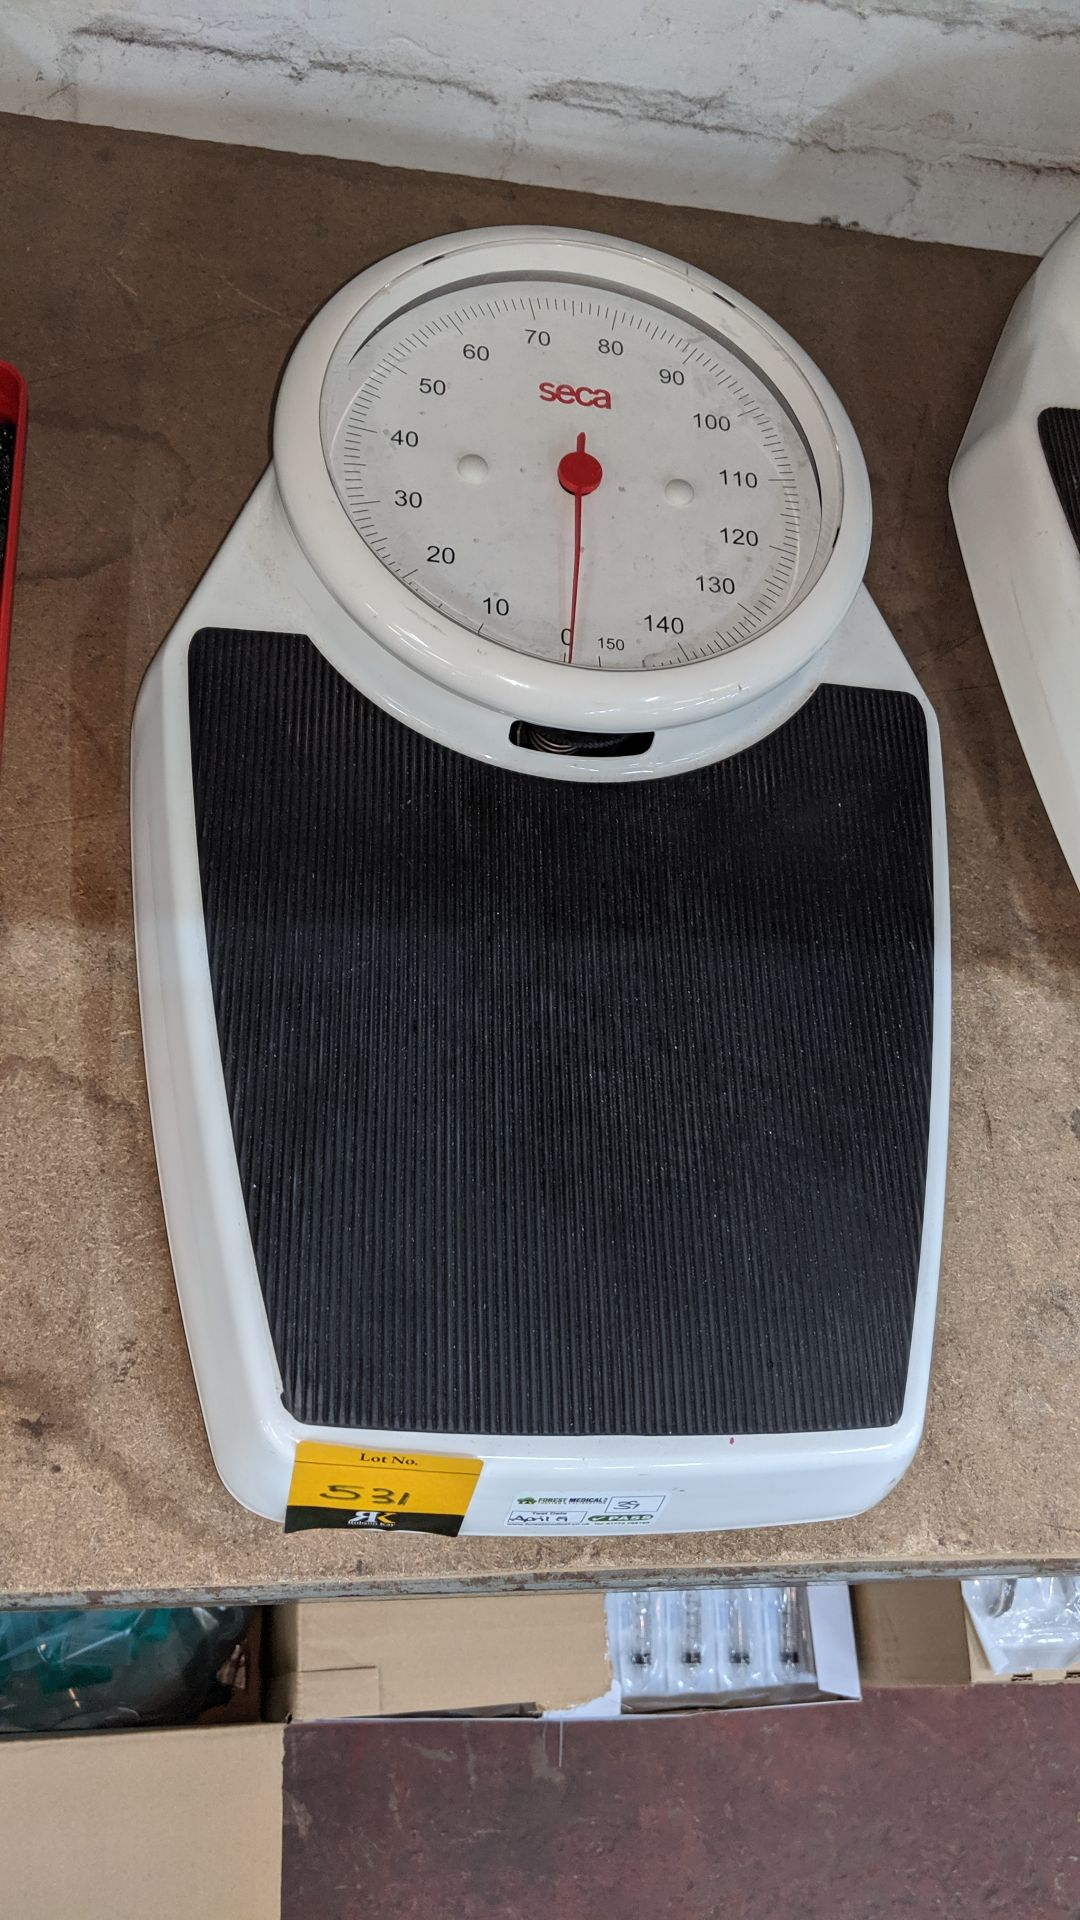 Lot 531 - Seca stand-on scales. This is one of a large number of lots used/owned by One To One (North West)